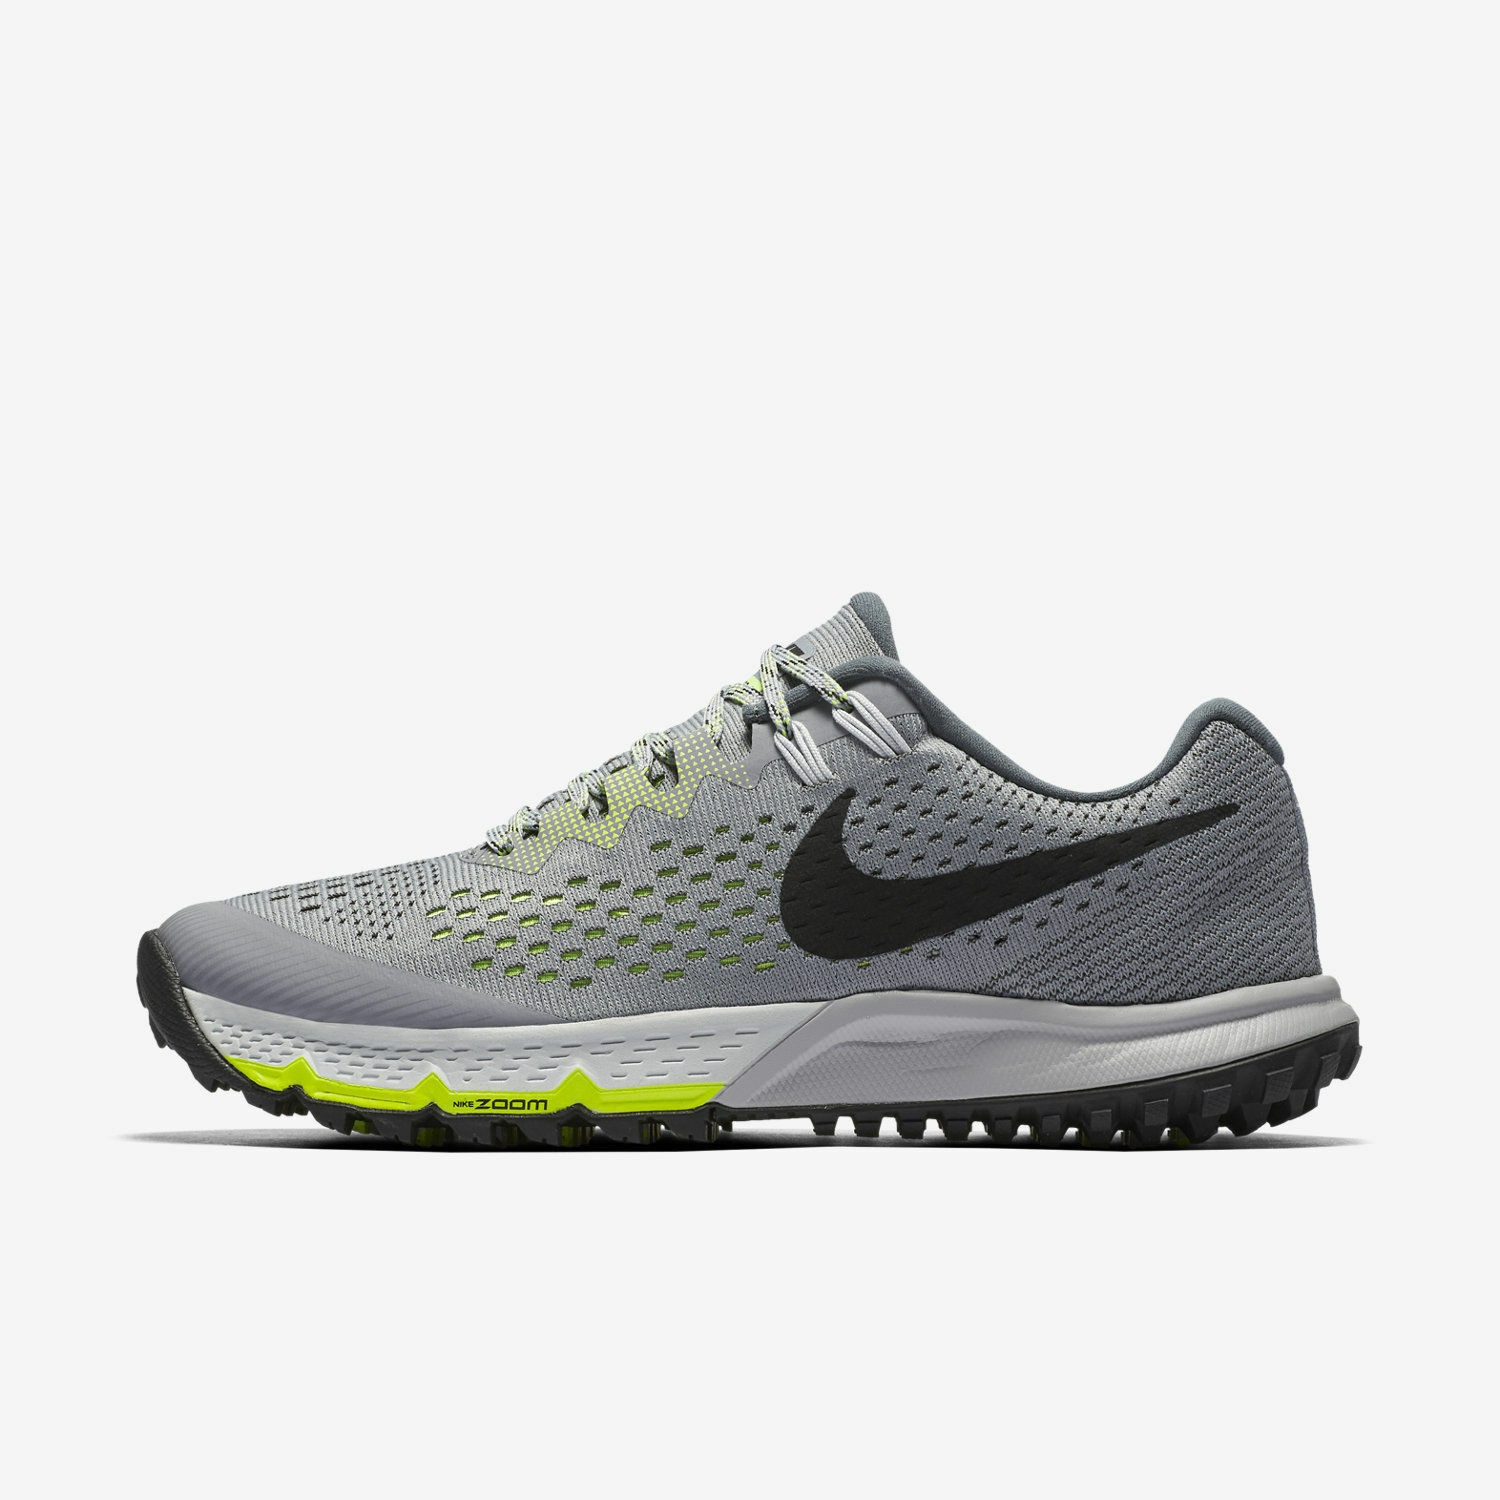 7a7ce0e950d8 ... czech picture 1 of 6 9cc13 d37c0 czech picture 1 of 6 9cc13 d37c0  top  quality nike zoom terra kiger charcoal grey yellow grey womens running shoes  ...